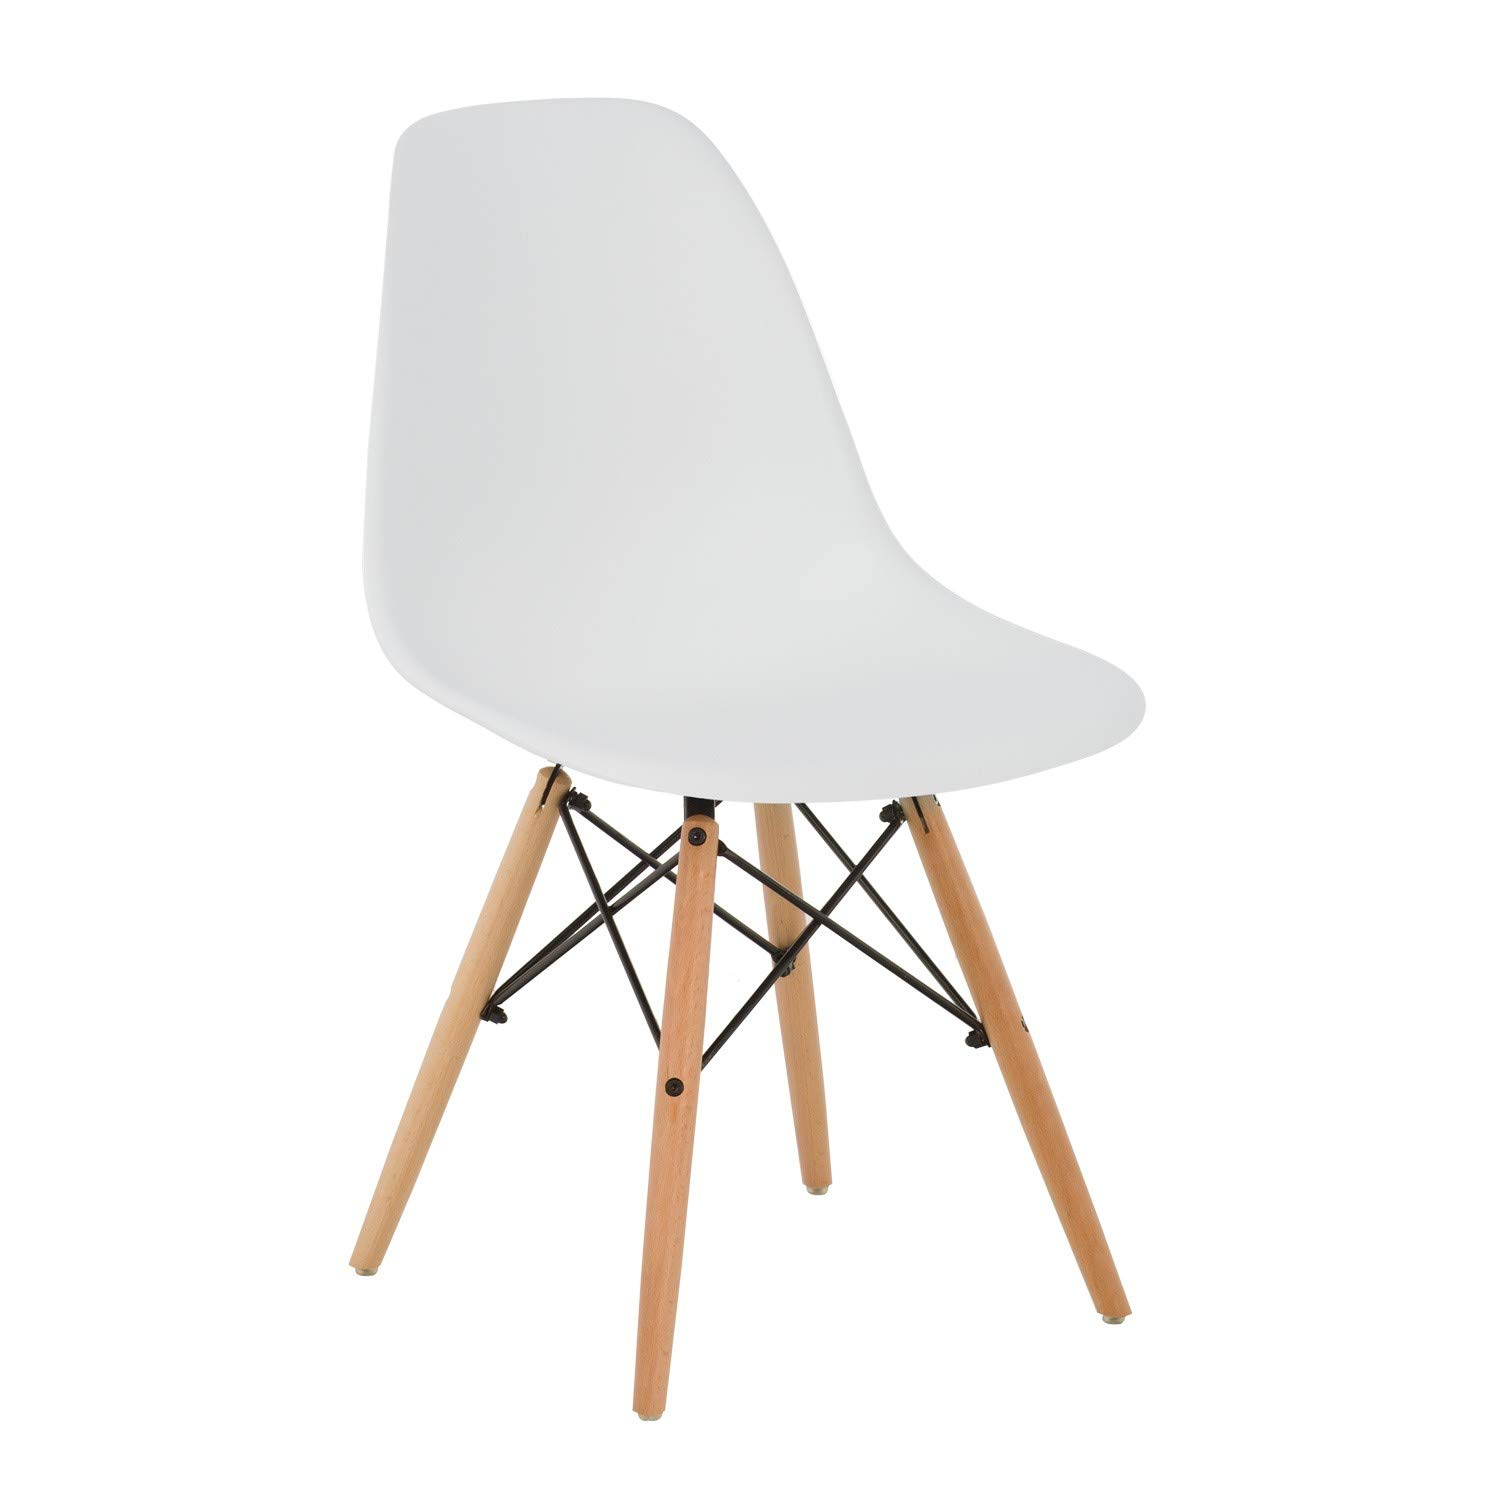 SKLUM Silla IMS Blanco Madera Natural - (Elige Color) product image